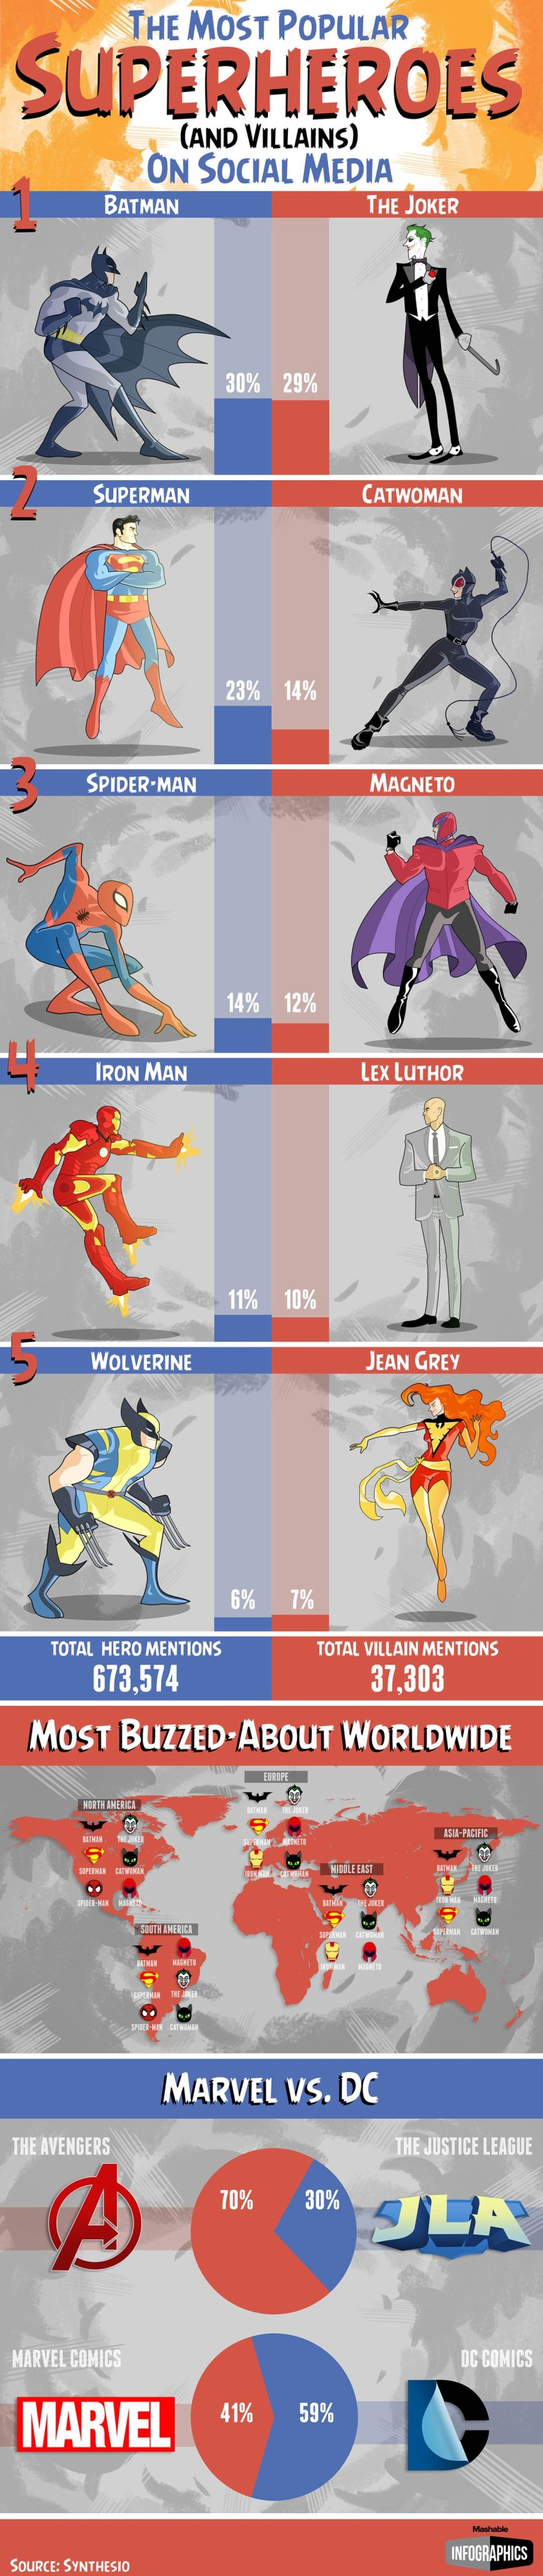 Superheroes vs. Villains - WeRSM